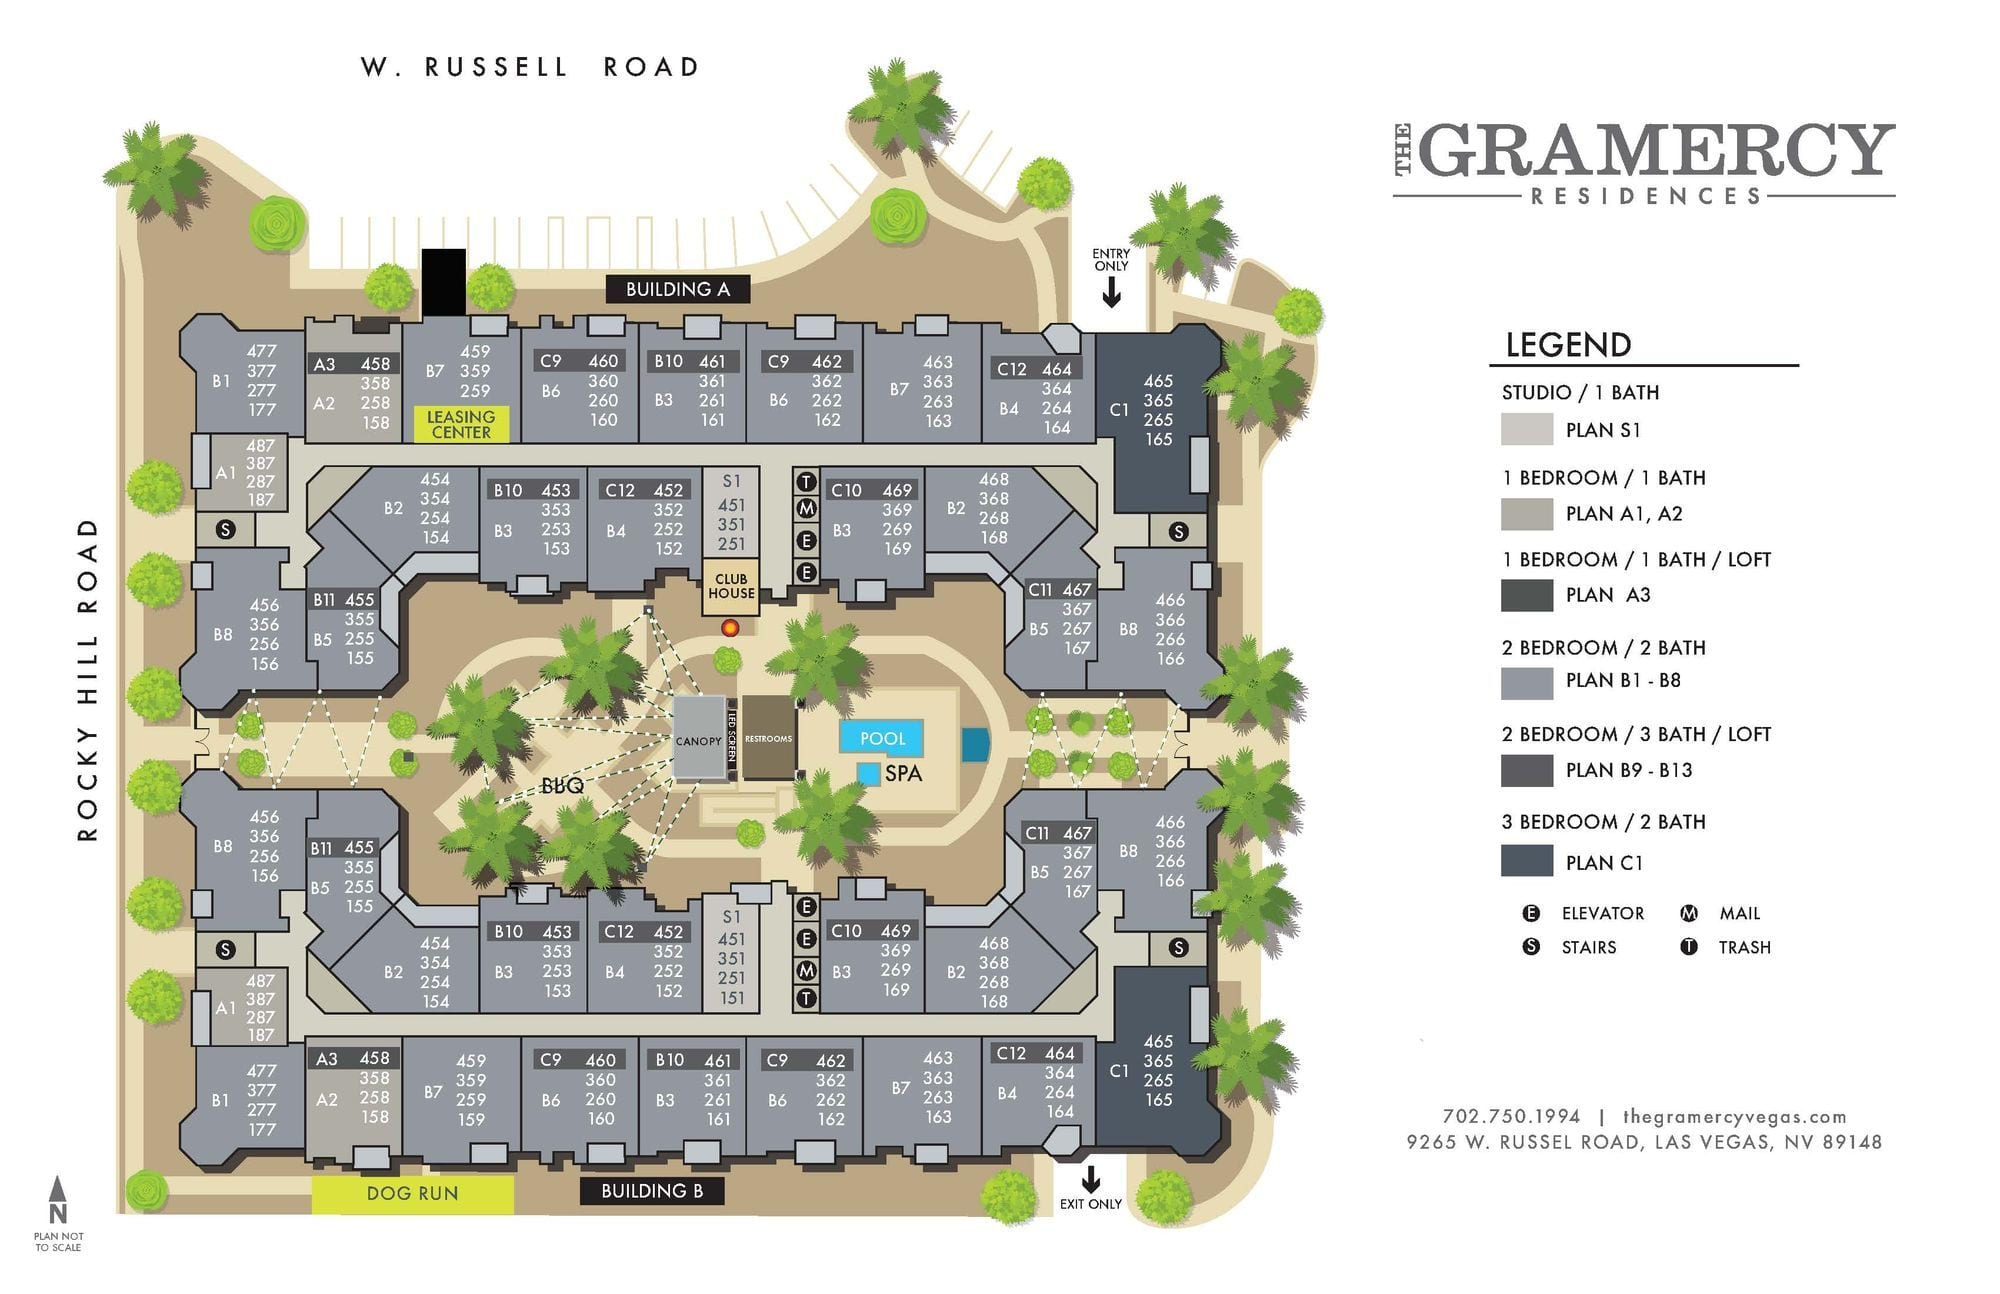 The Gramercy Residences Site Map